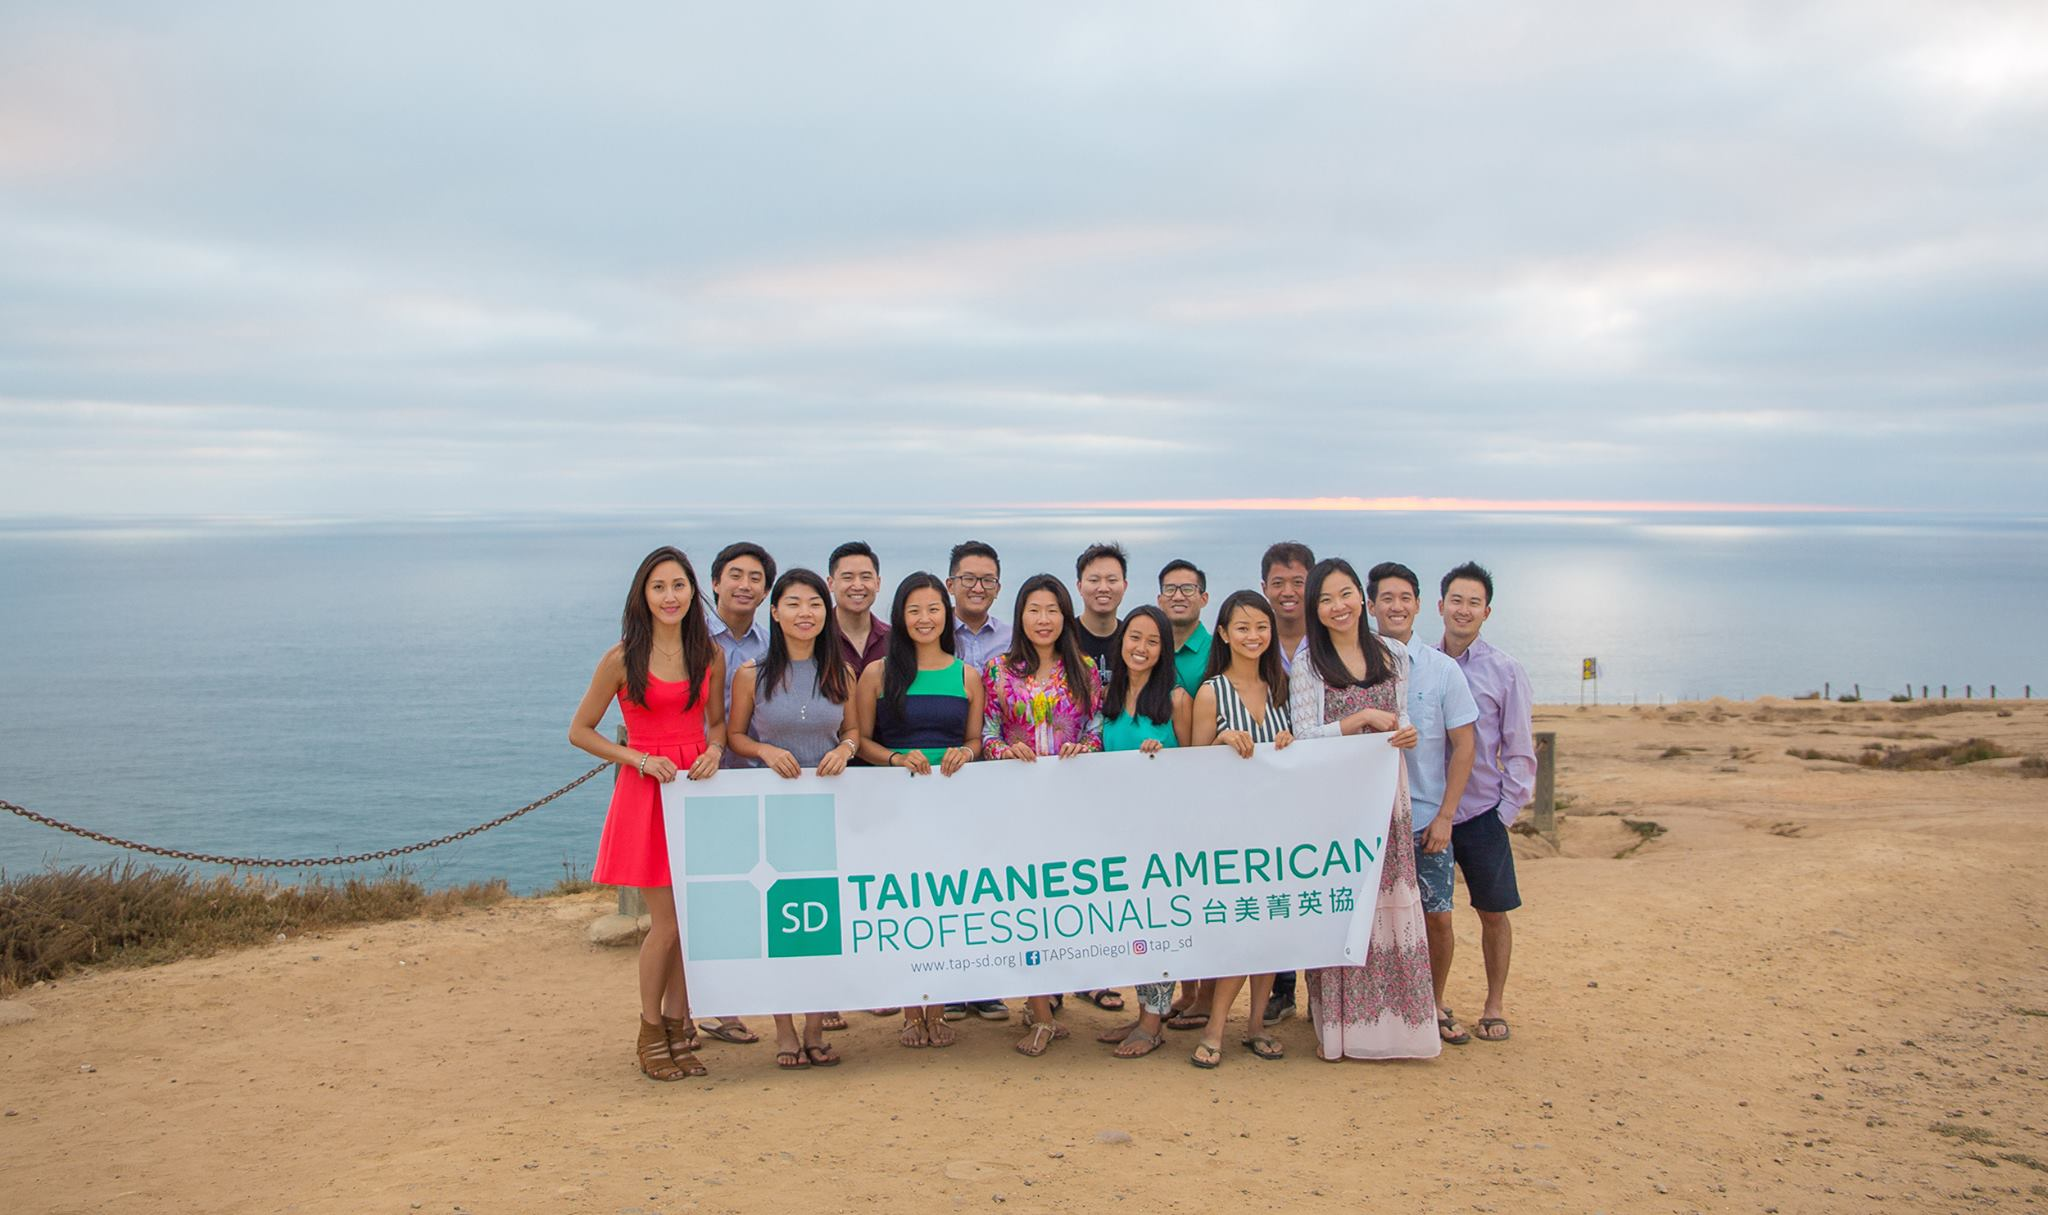 Taiwanese American Professionals San Diego